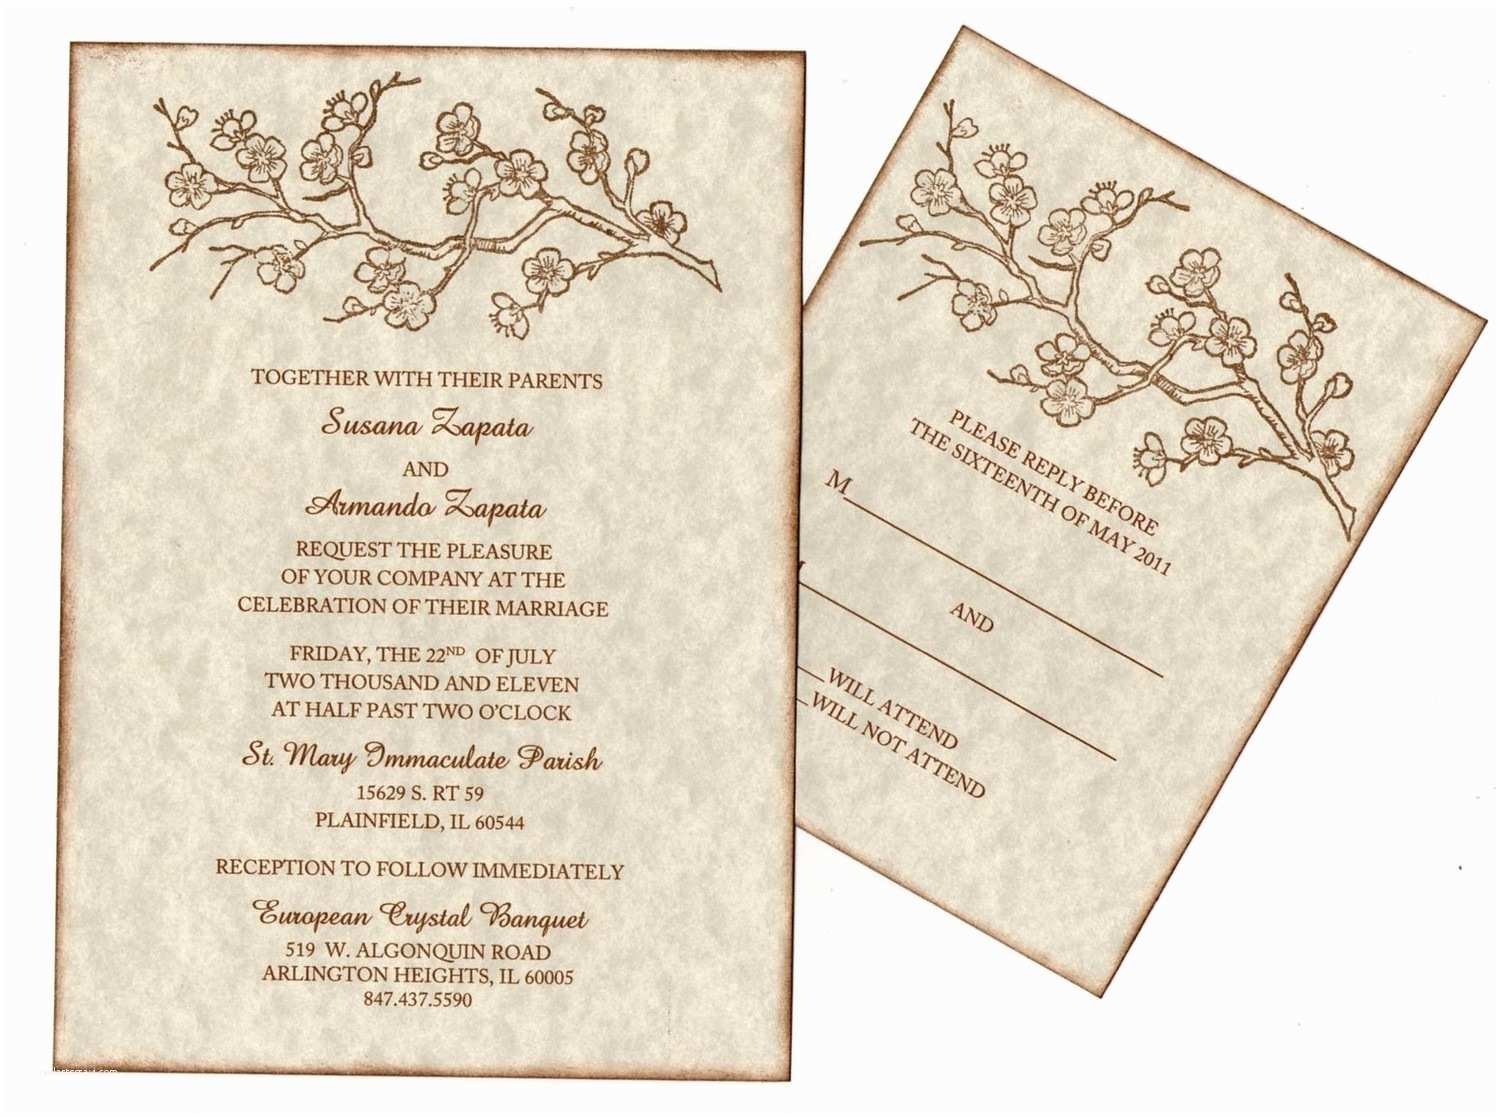 Wedding Invitation for Indian Wedding Hindu Wedding Invitation Samples Various Invitation Card